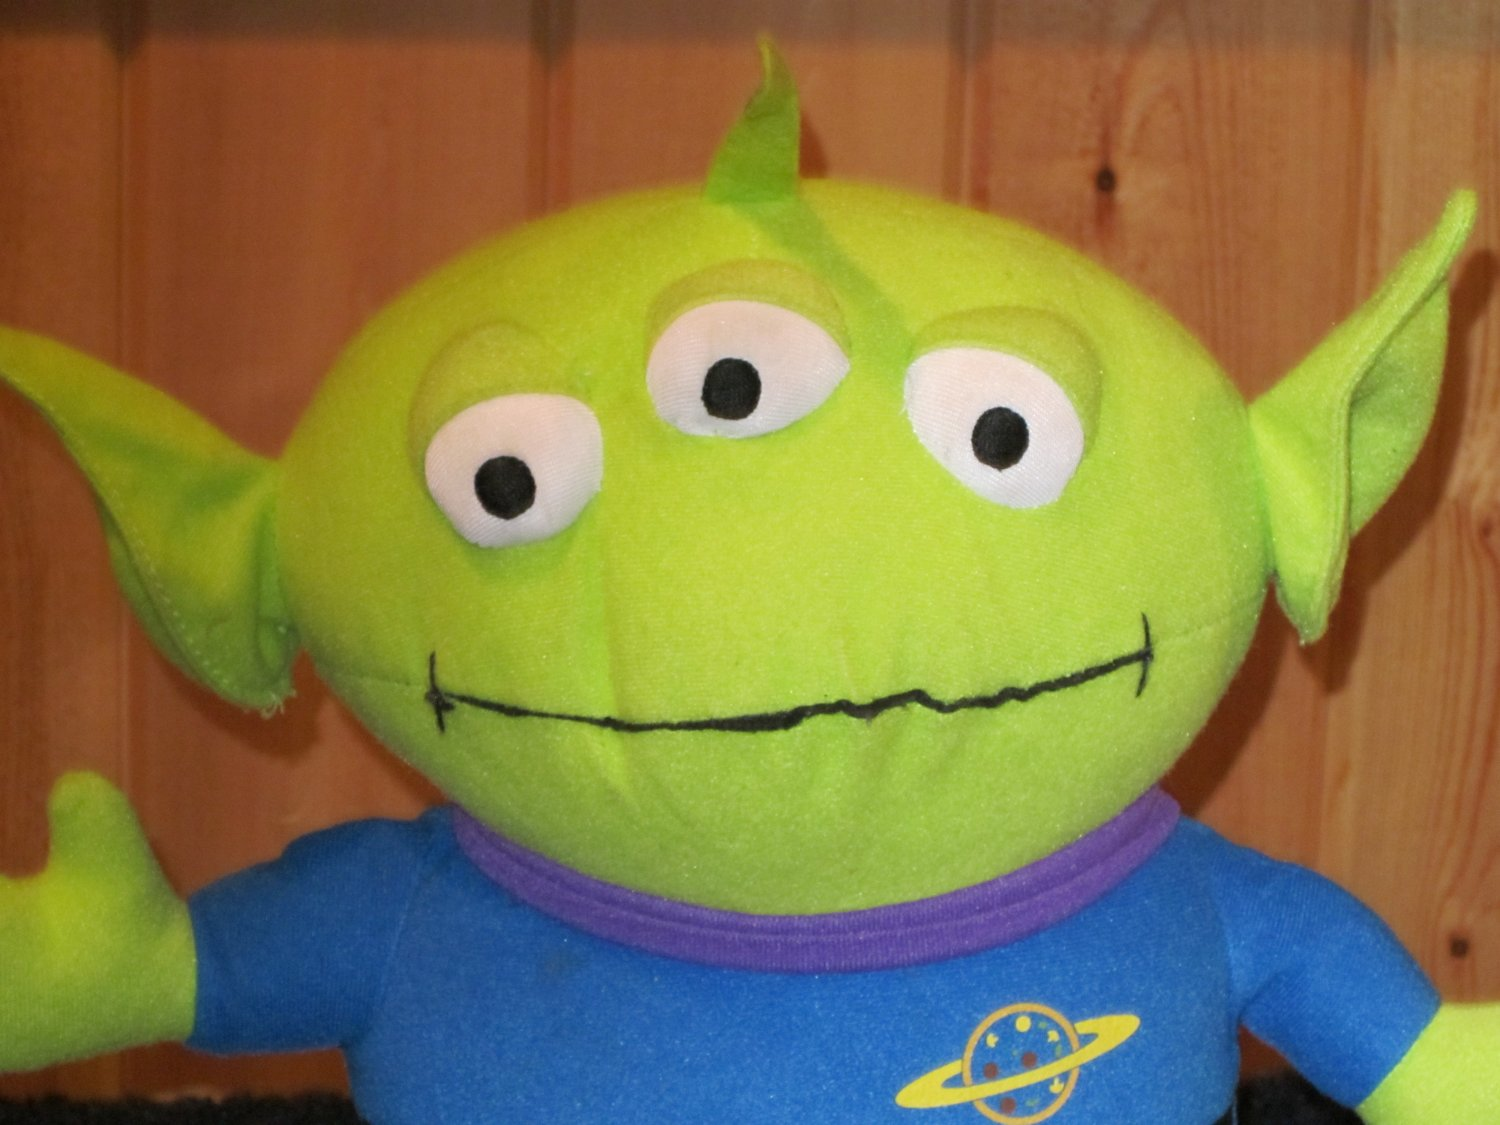 Disney Pixar Toy Story Plush Alien by Toy Factory